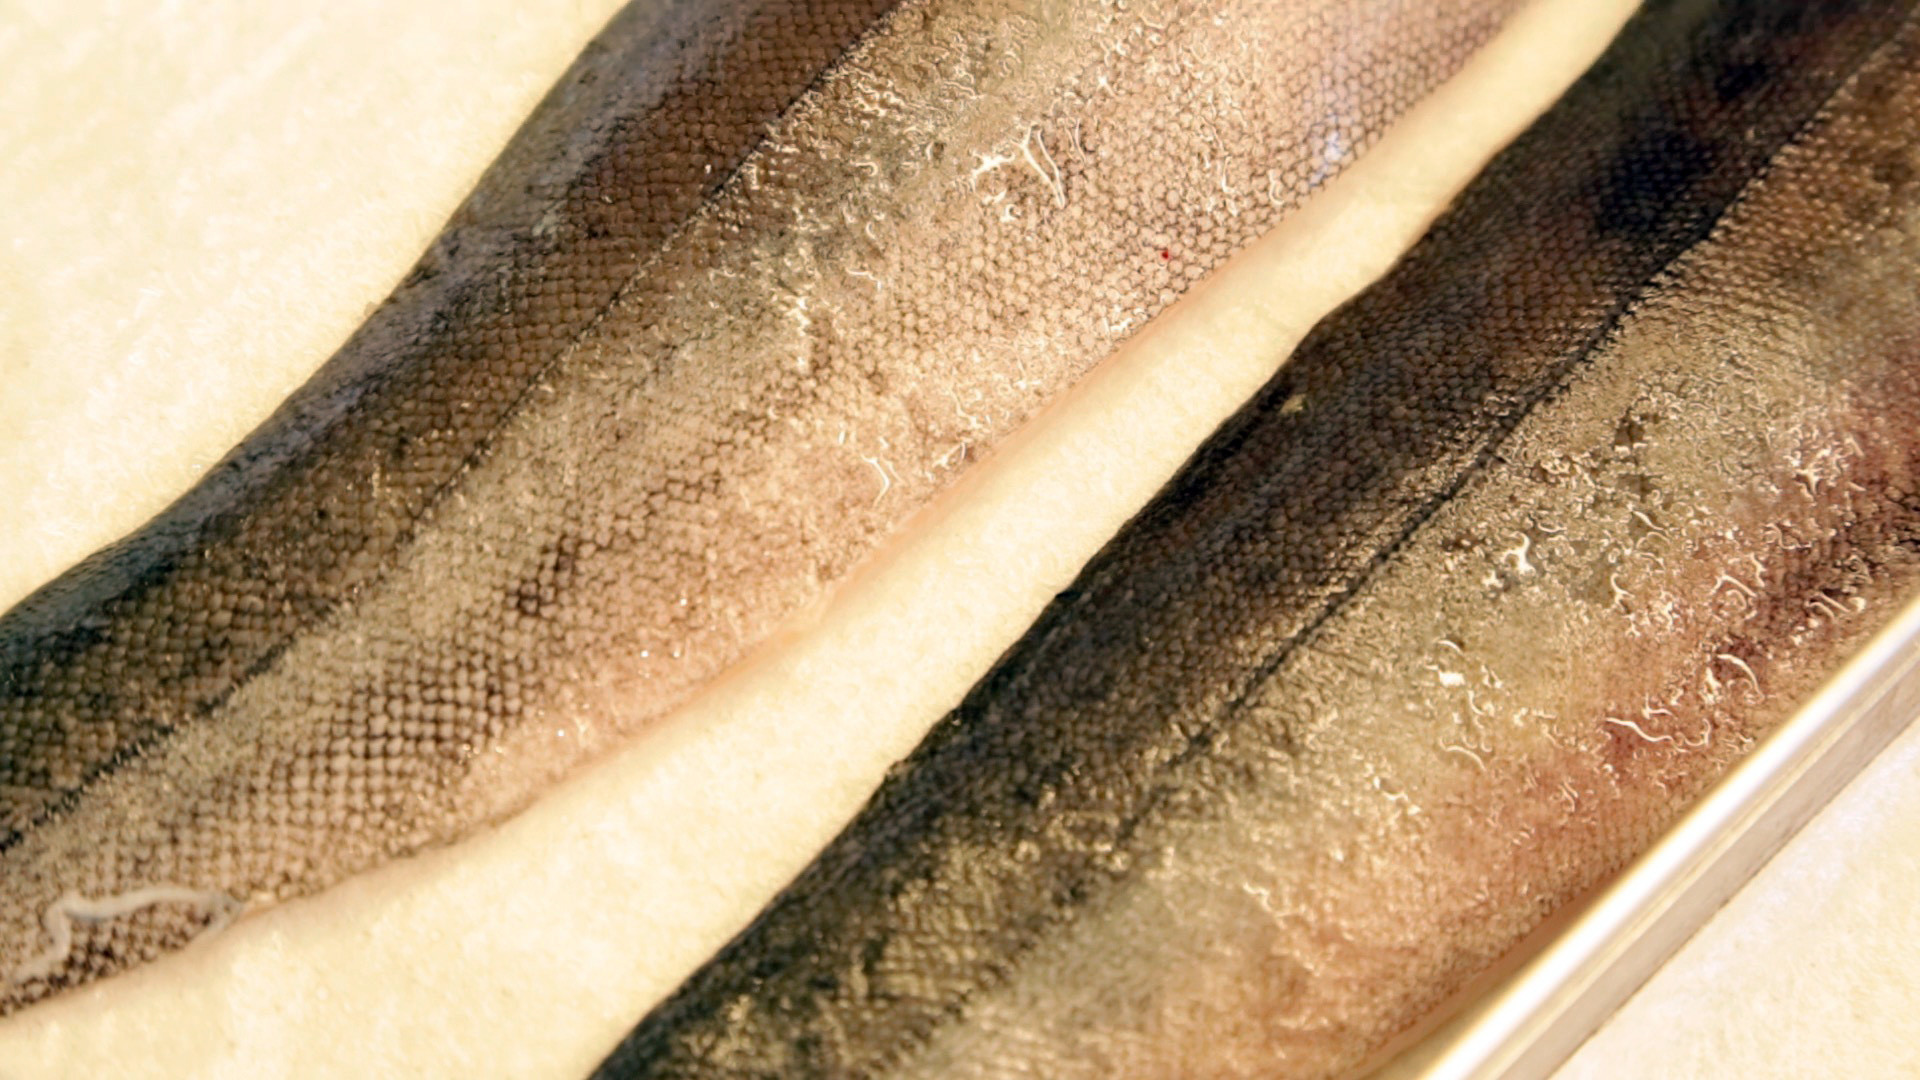 Black cod is one type of Pacific rock fish.